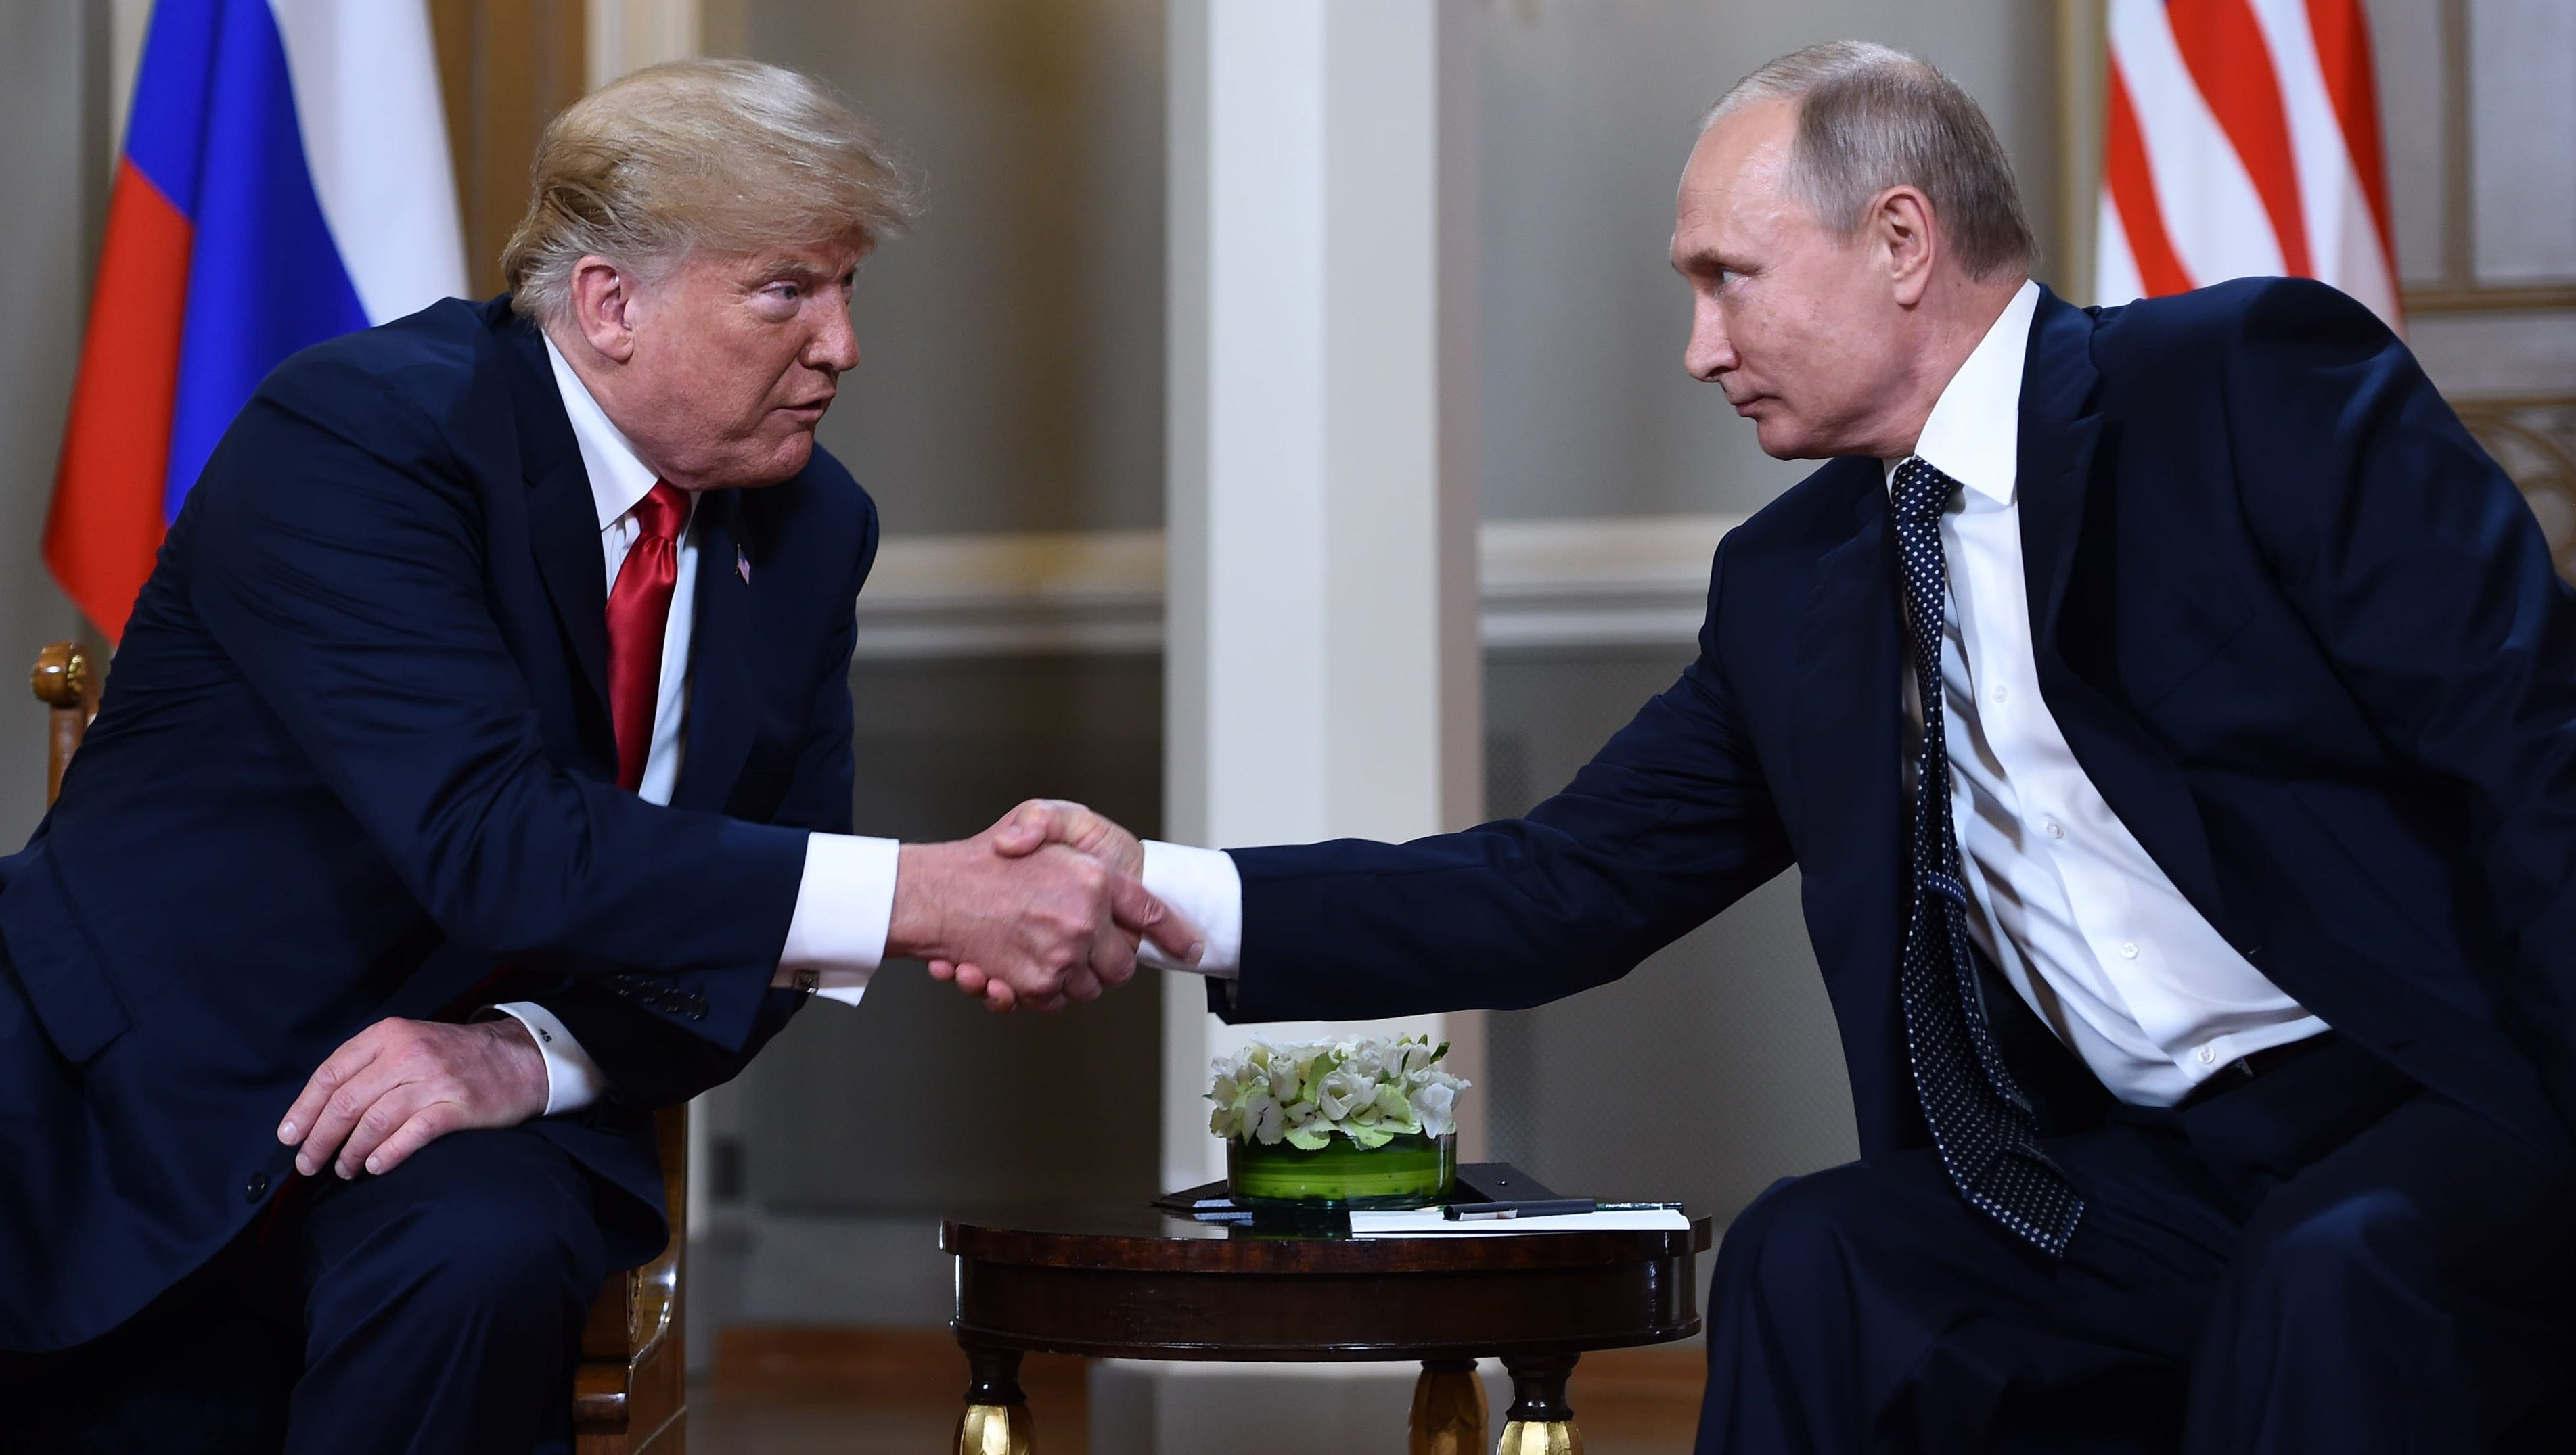 usatoday.com - Gregory Korte and John Fritze, USA TODAY - Vladimir Putin denies meddling in 2016 U.S. presidential election after he and Trump meet